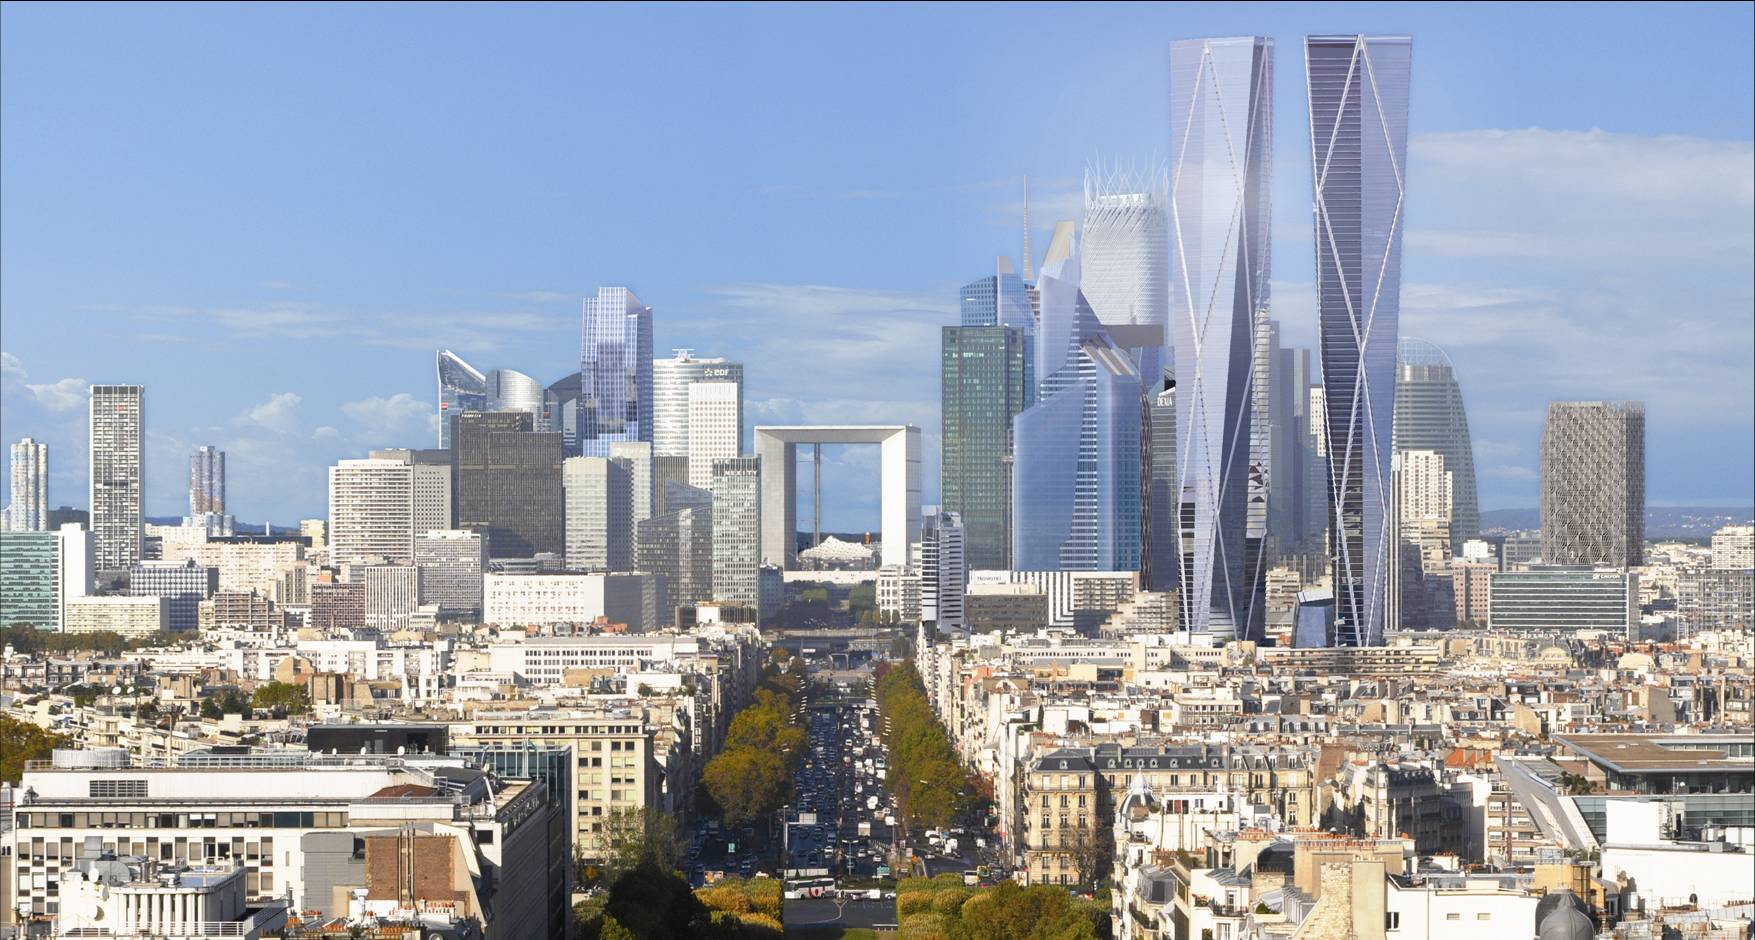 Défense quartier